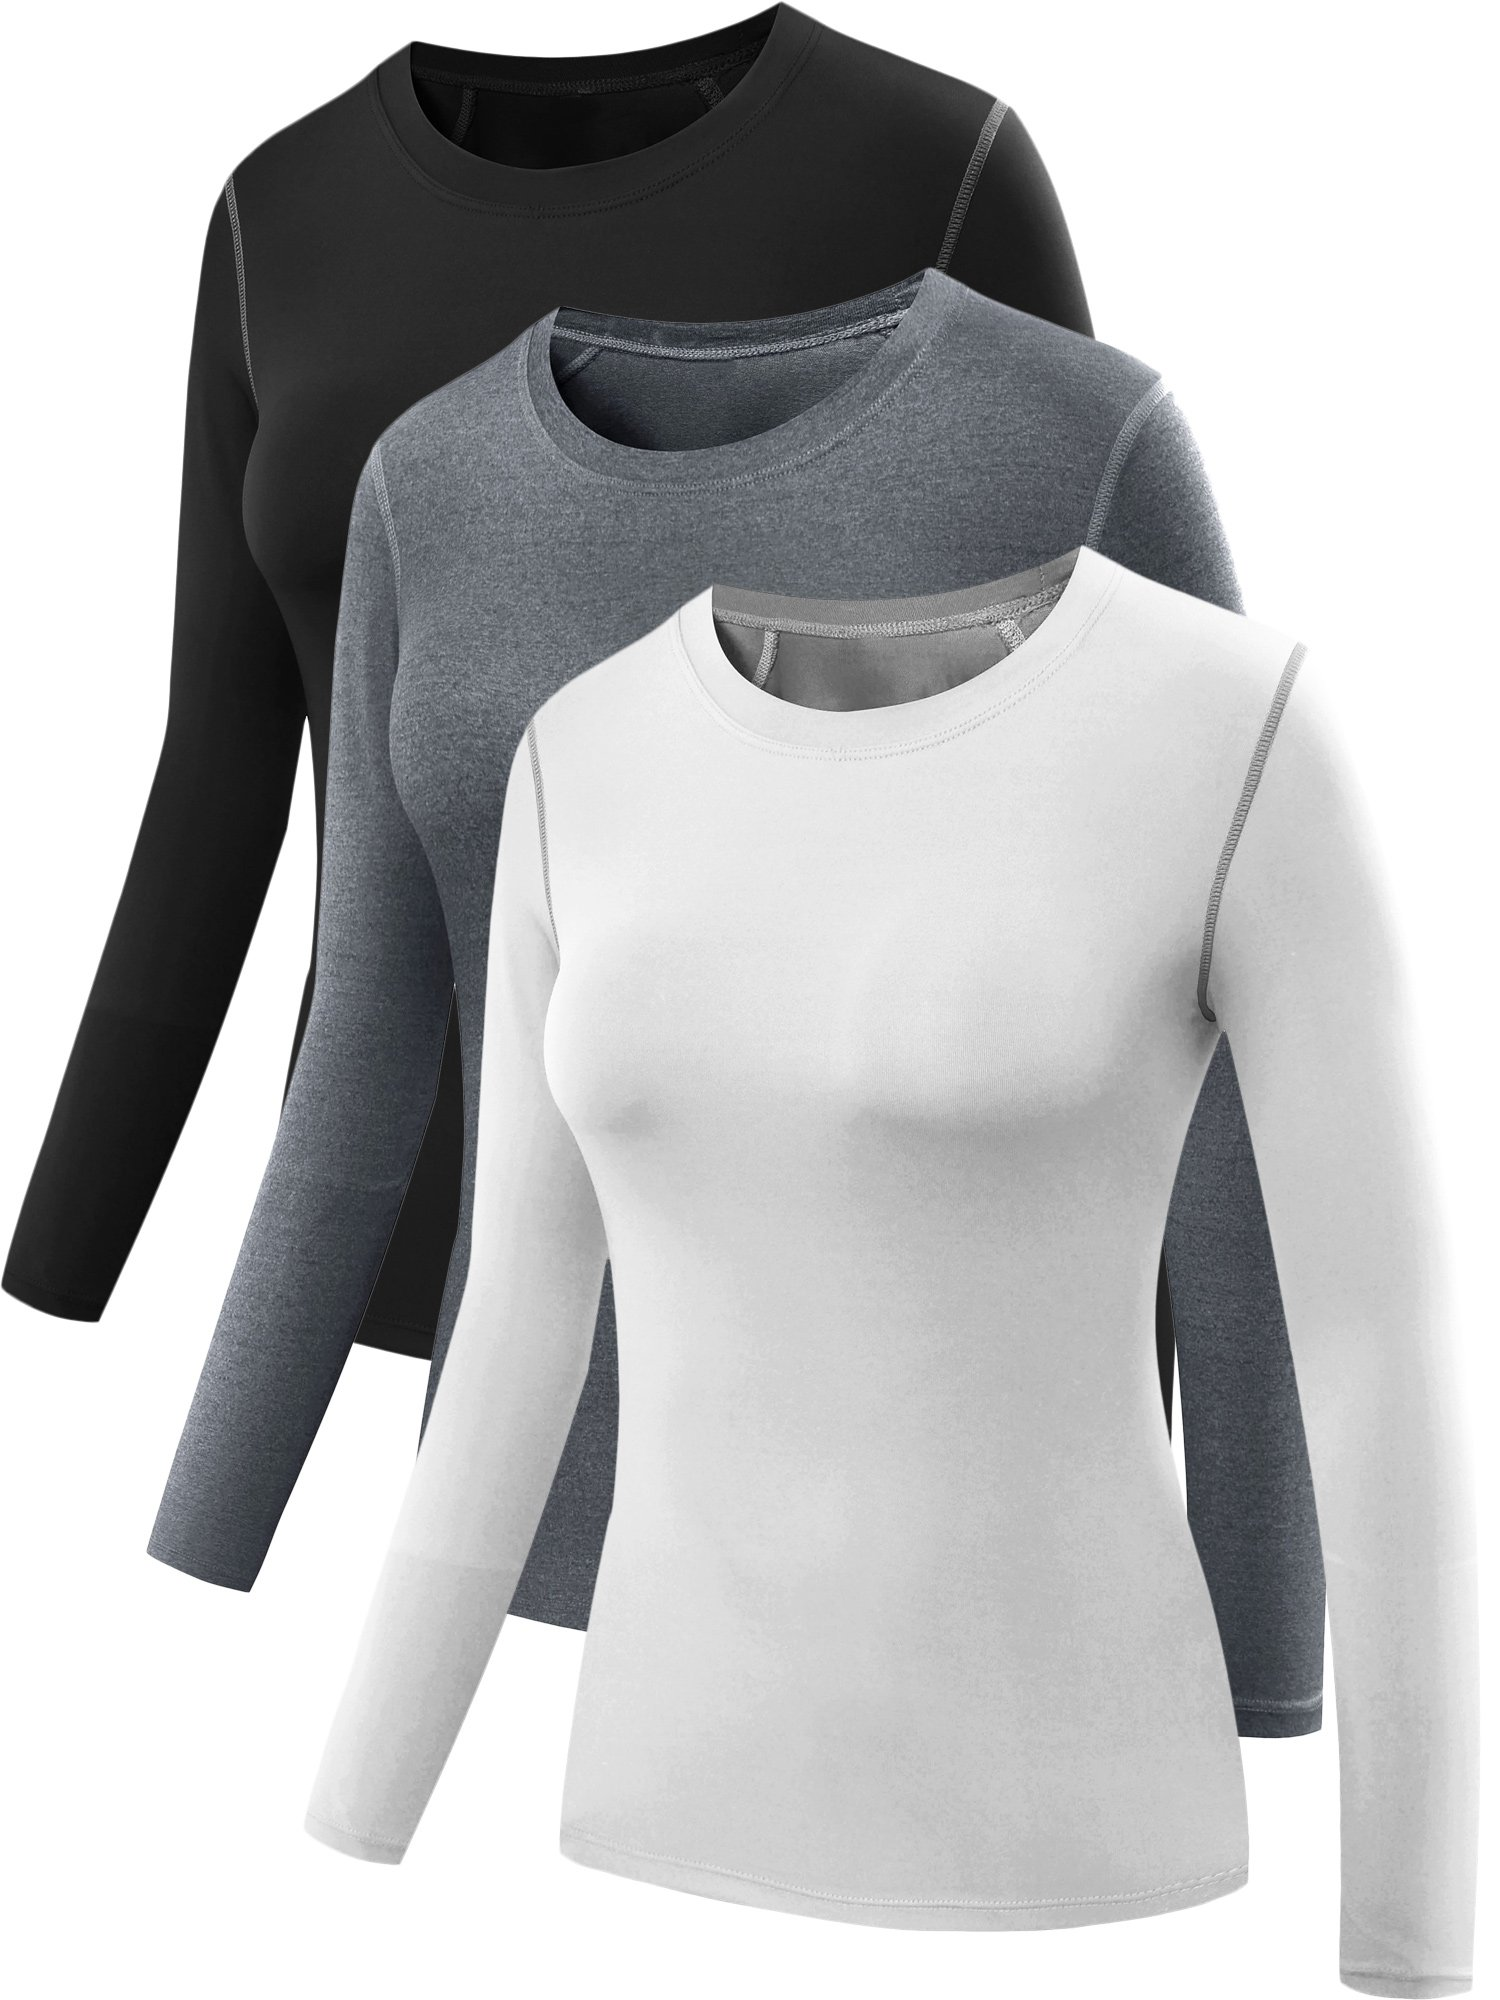 Neleus Women's 3 Pack Dry Fit Athletic Compression Long Sleeve T Shirt,Black,Grey,White,Small